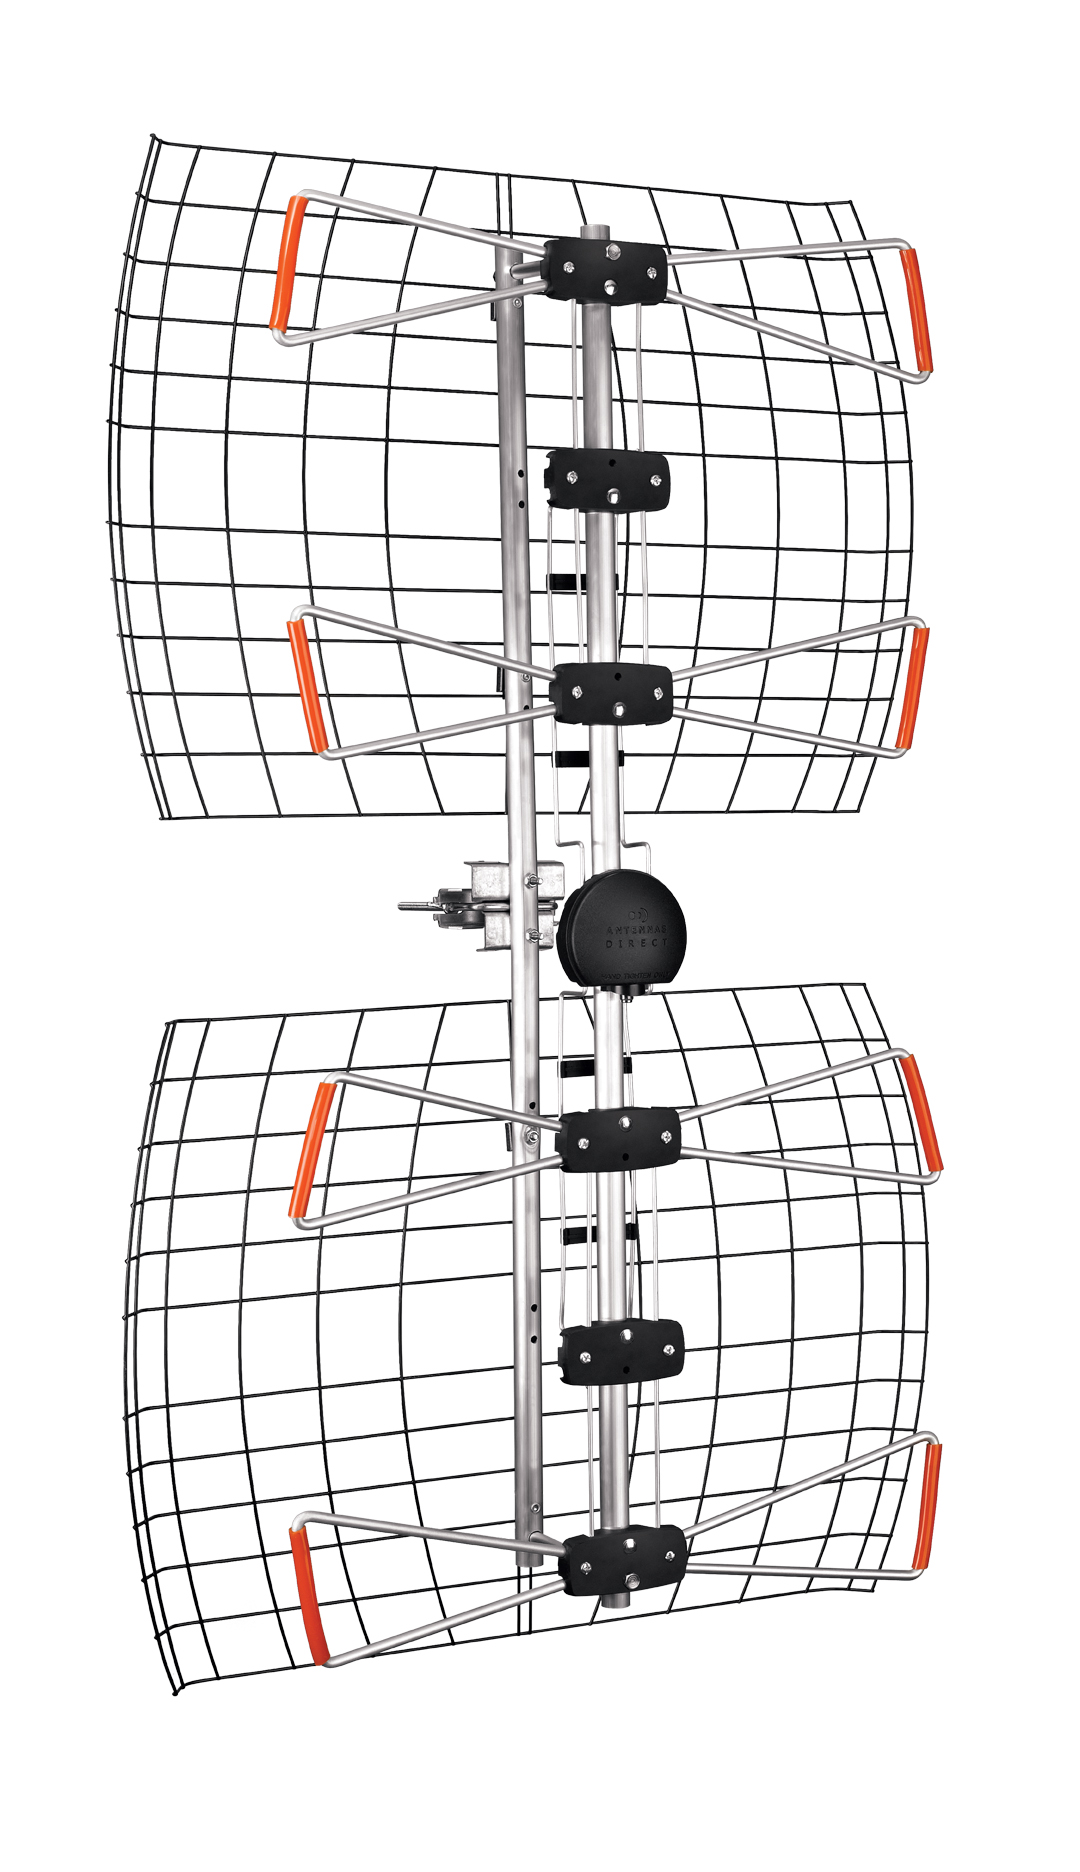 Hdtv Antenna Ota Over The Air Channel Master Winegard Antennas Direct Ooma And Streaming Tv